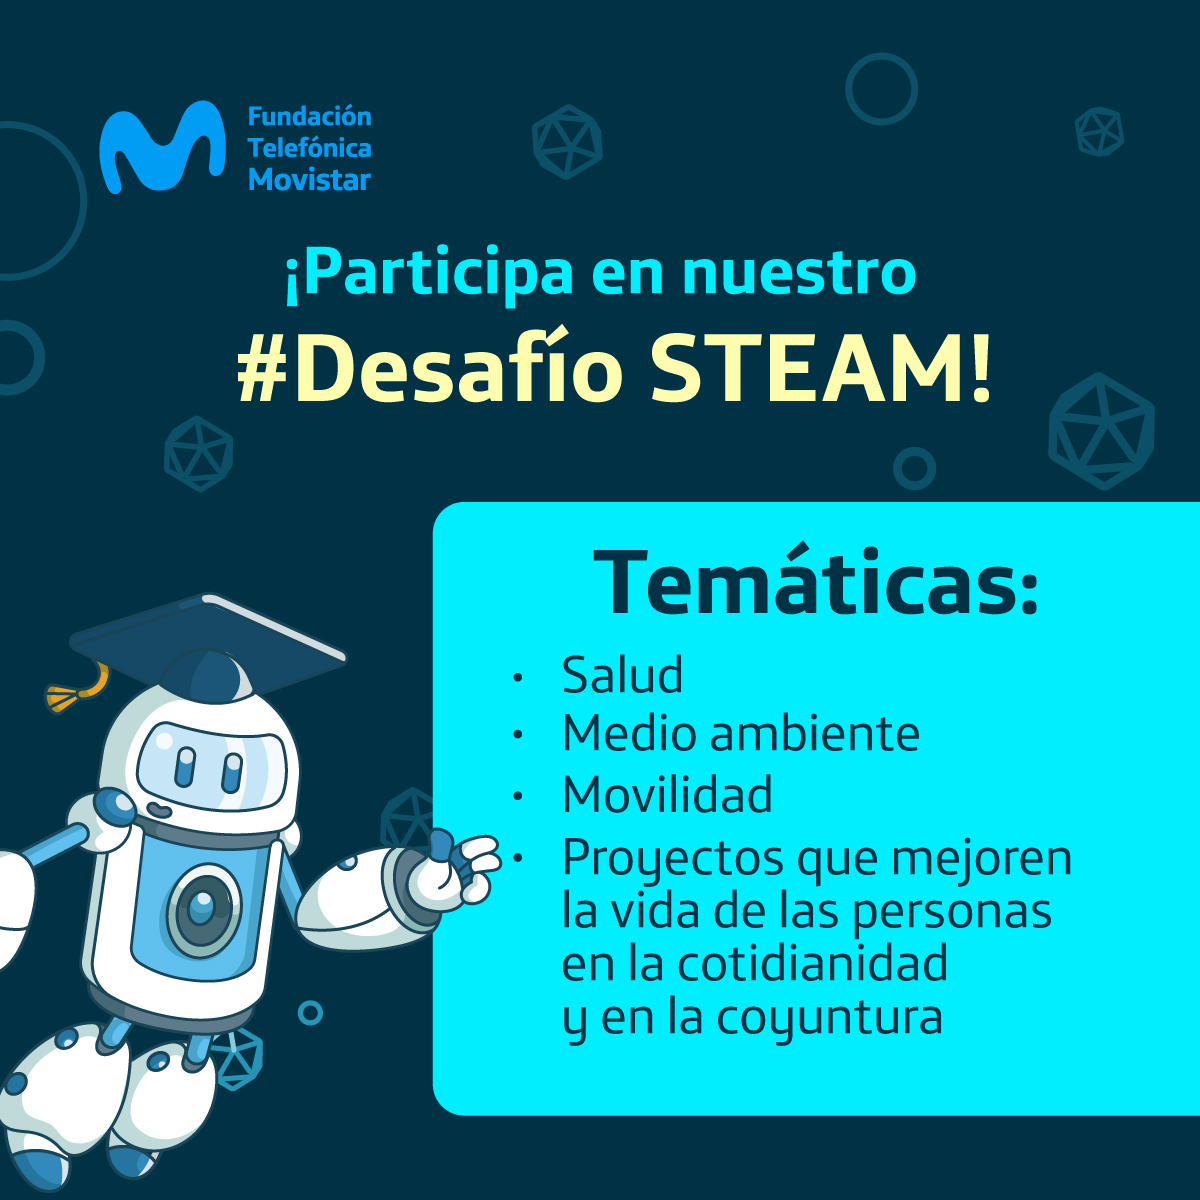 Desafio Steam